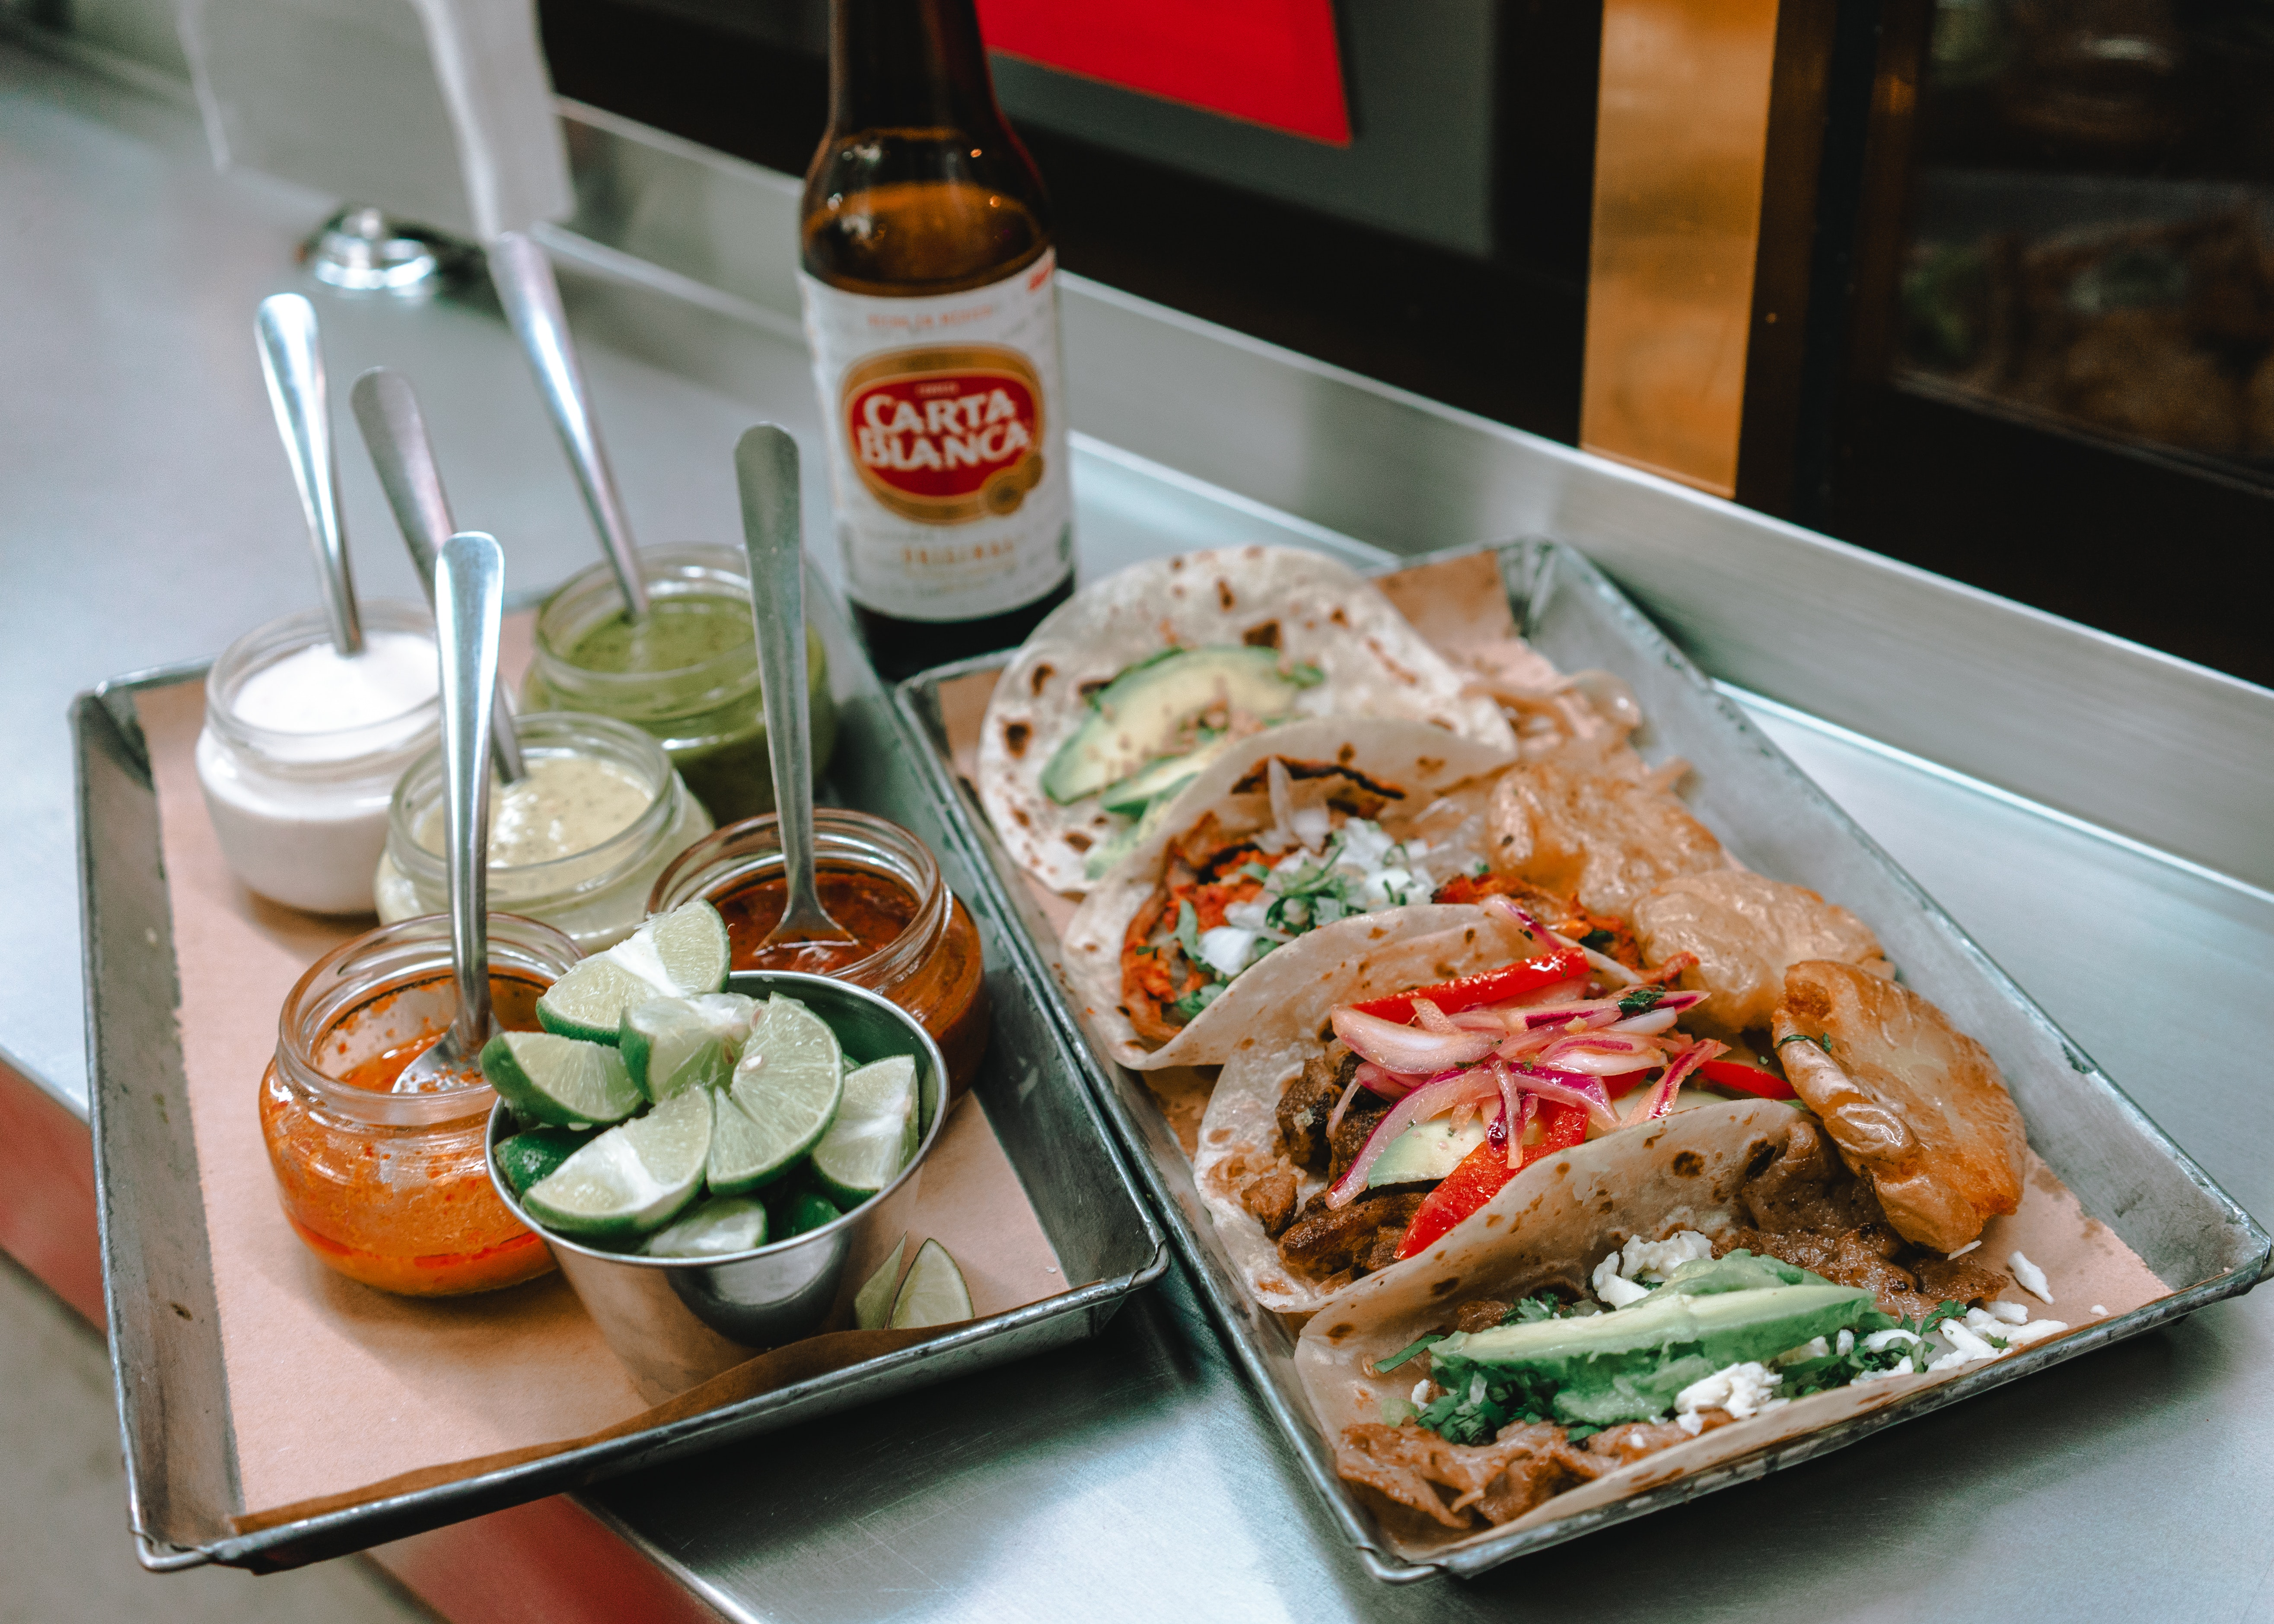 Fast Casual Mexican Food: Fully Staffed, Management in Place